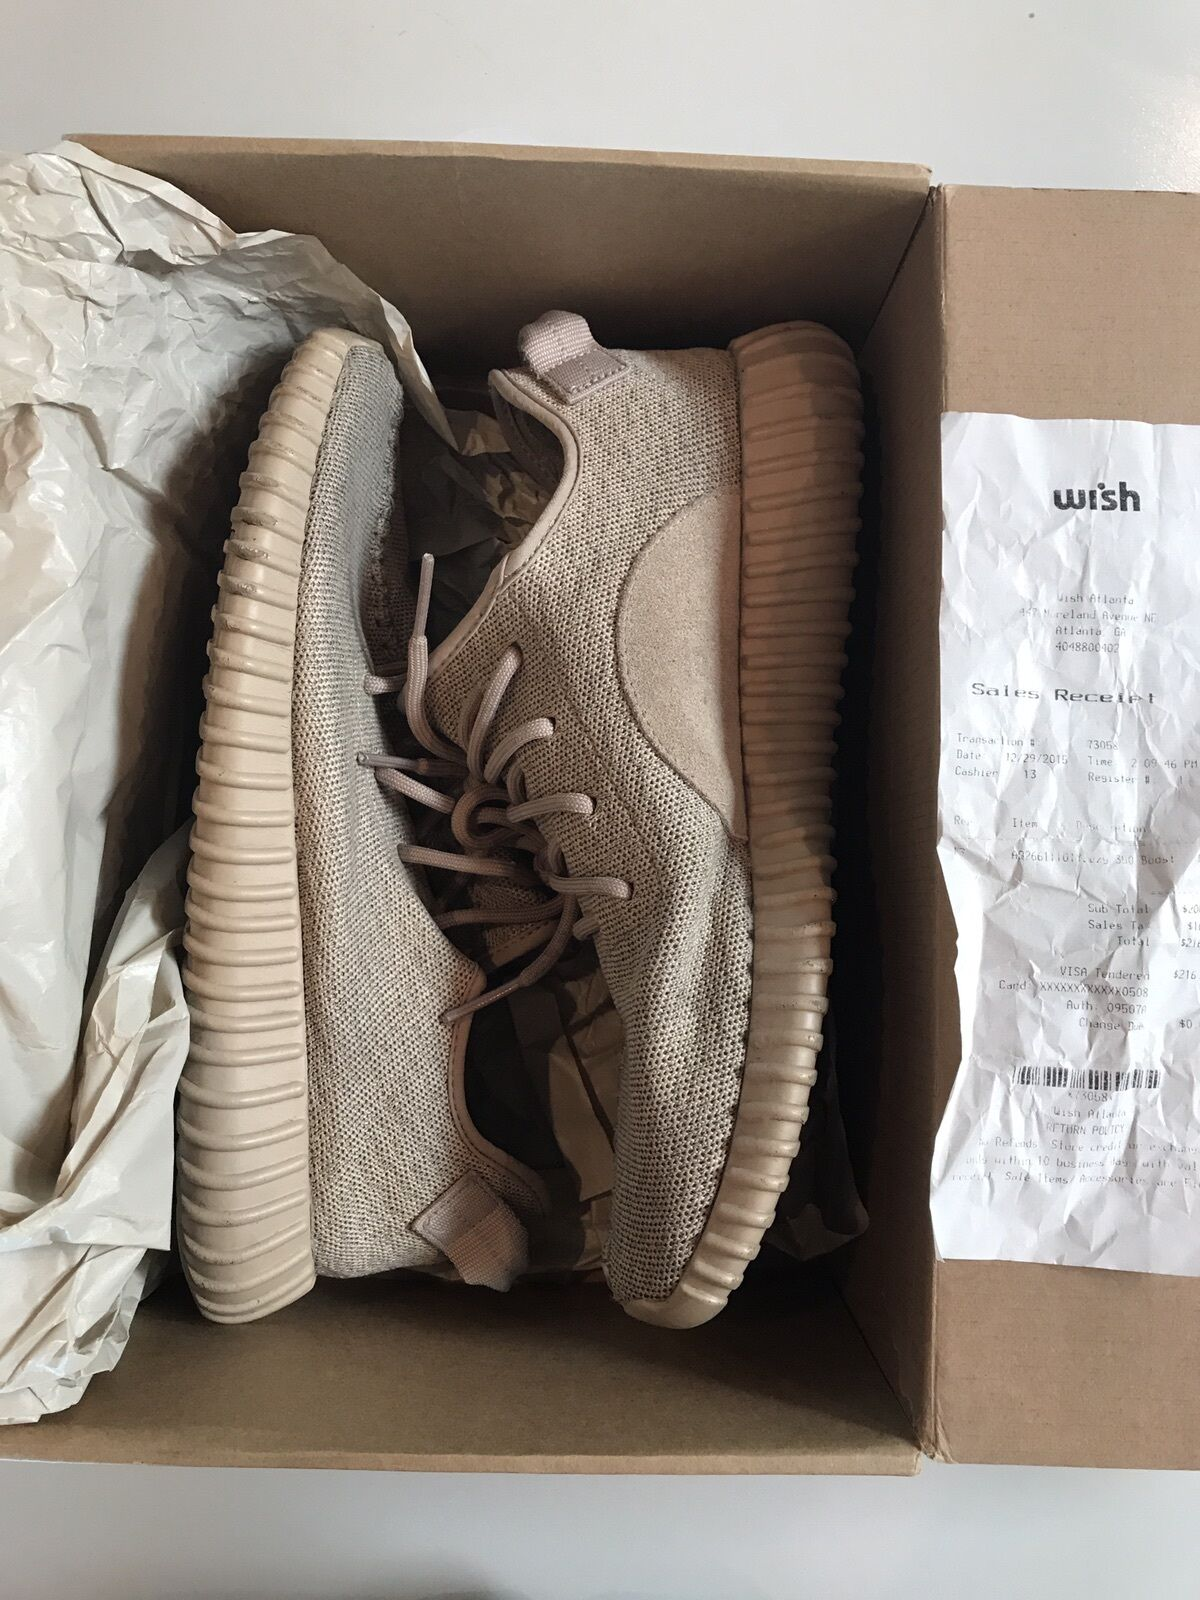 Authentic Adidas Yeezy Boost 350 Oxford Tan Size 11